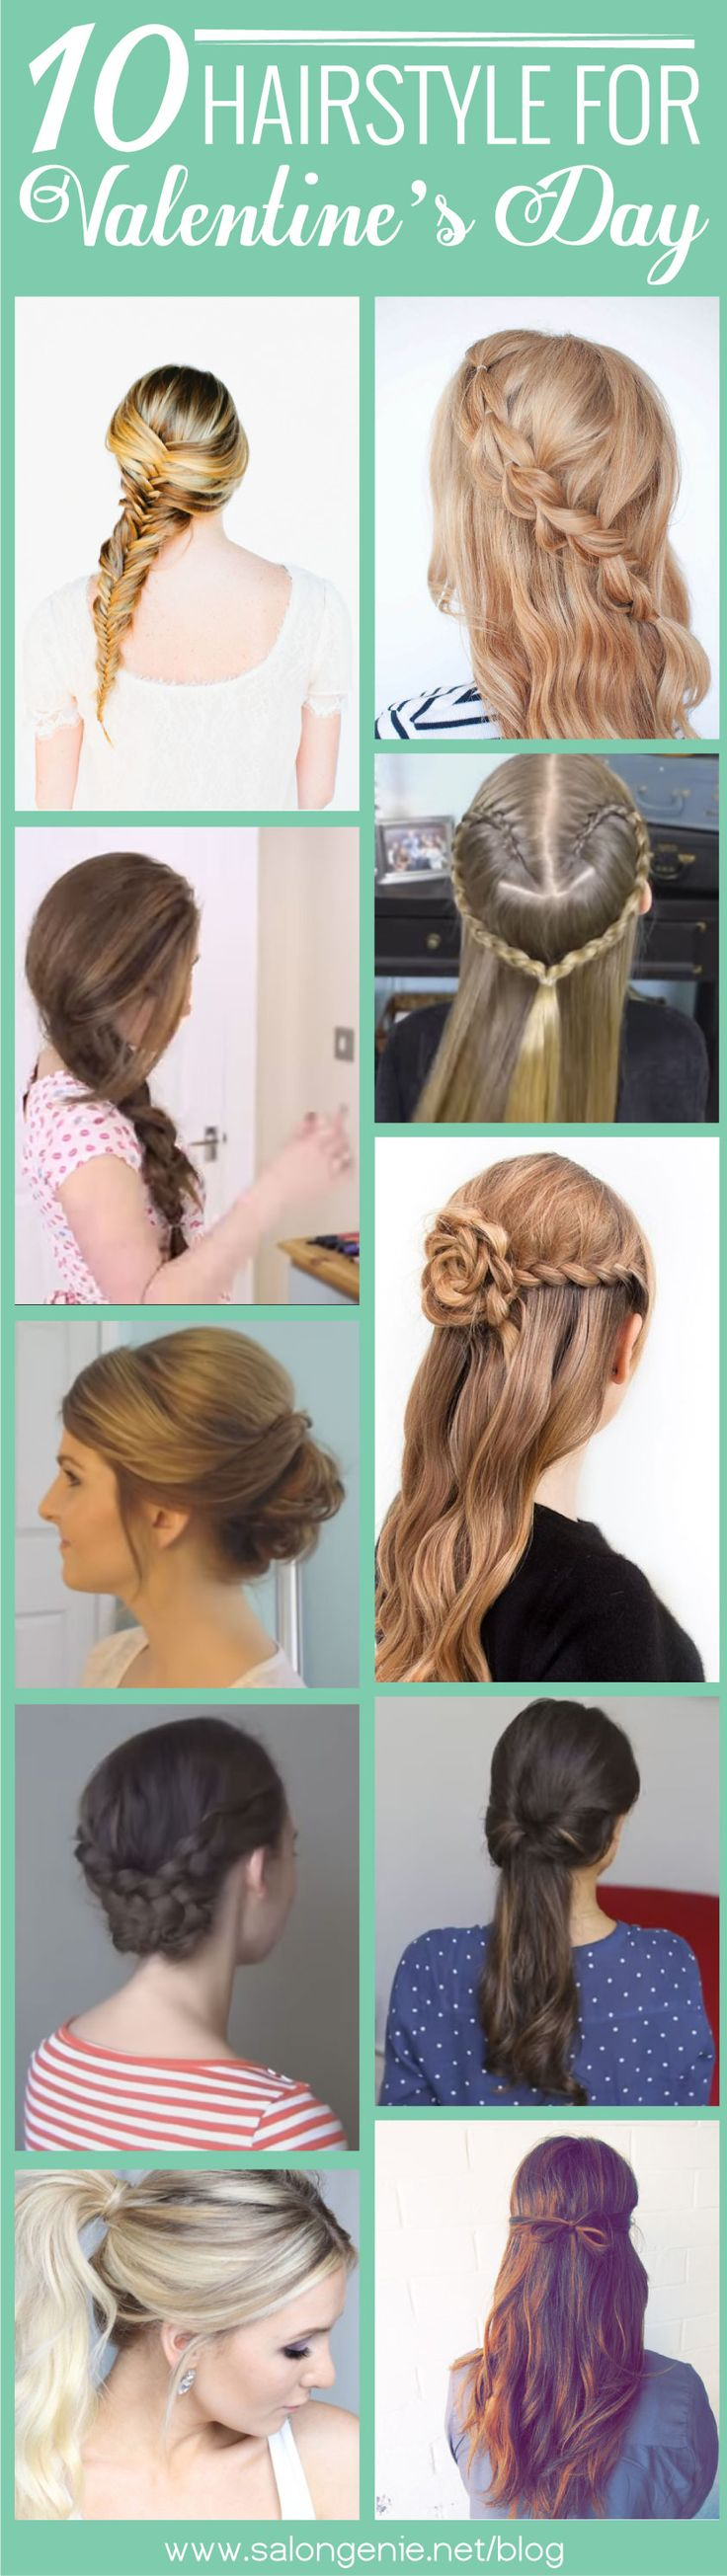 Top 10 Hairstyles For Valentine's Day!